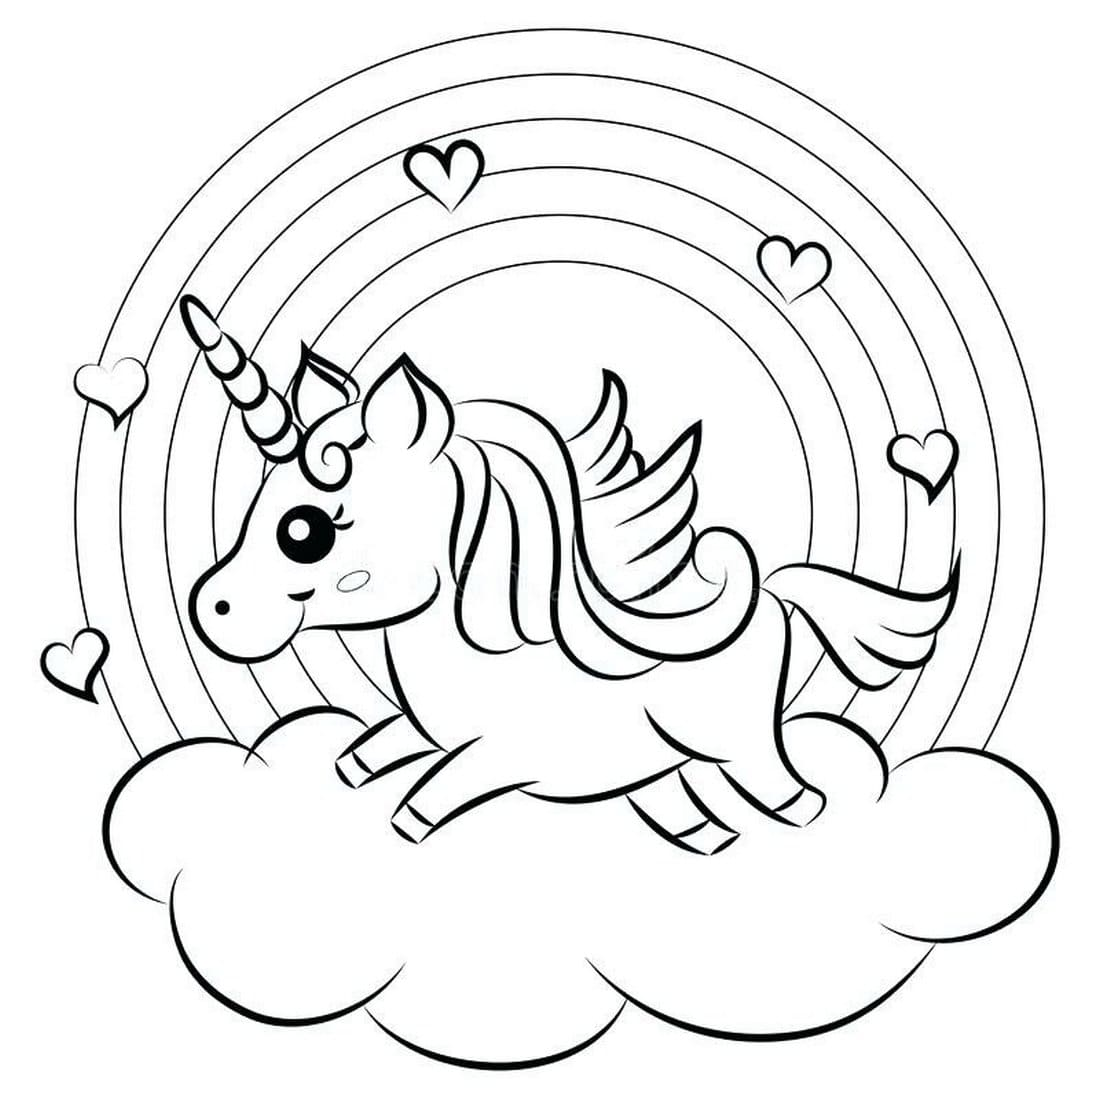 Rainbow Coloring Pages. Print for free on the website, 60 images